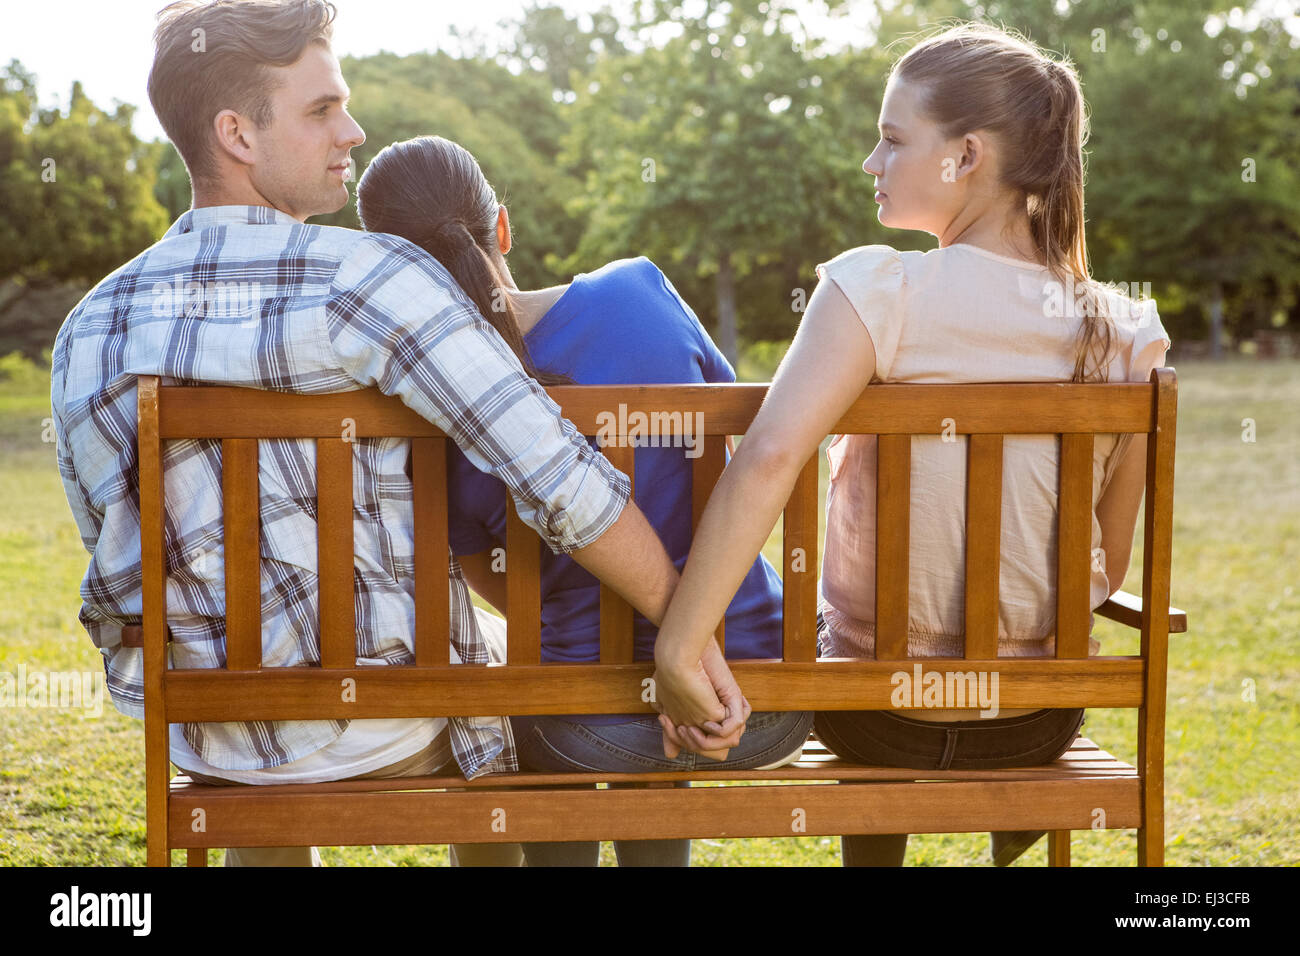 Man being unfaithful in the park - Stock Image